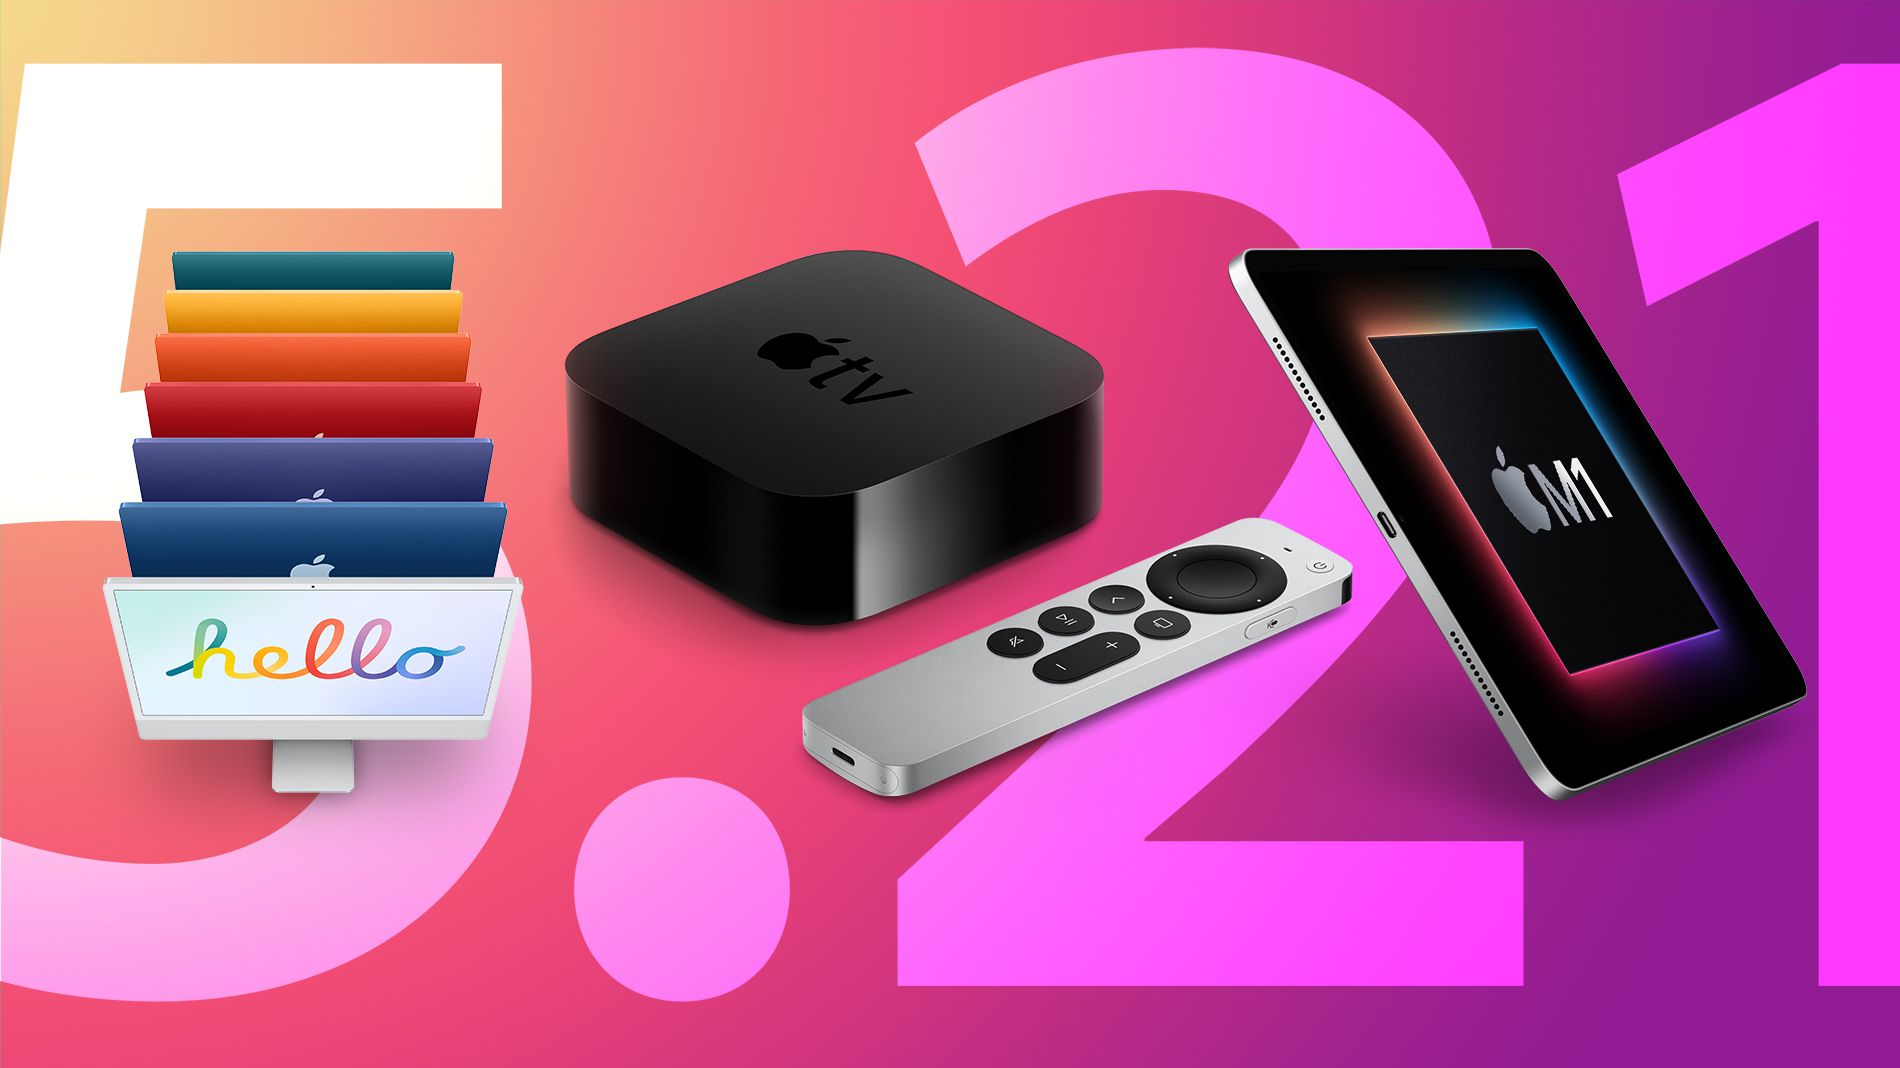 49+ Apple Ipad Apple Tv 4K Pics - counting your time